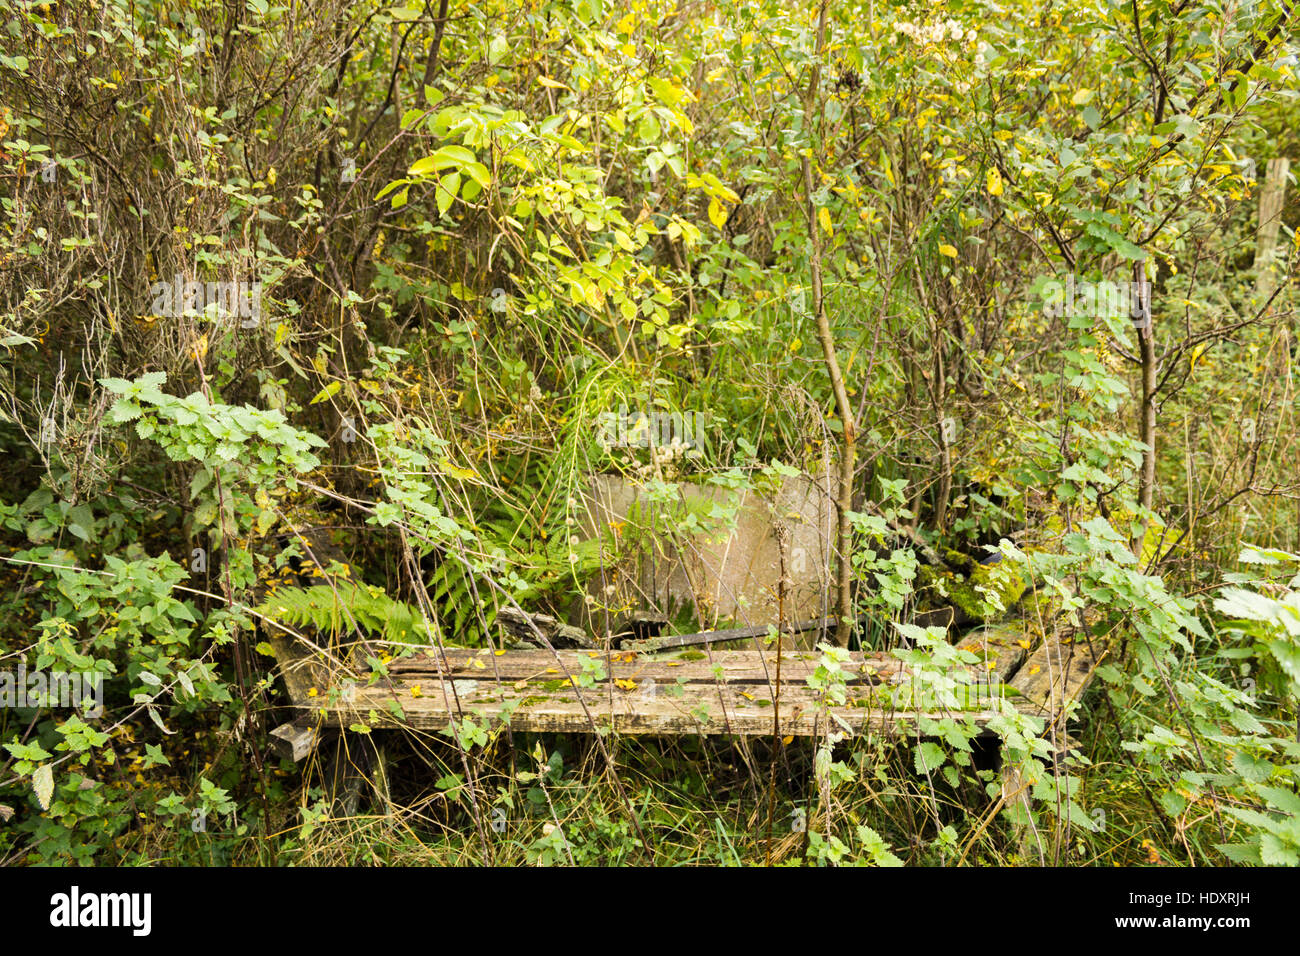 A hidden, abandoned and overgrown campfire place - Stock Image